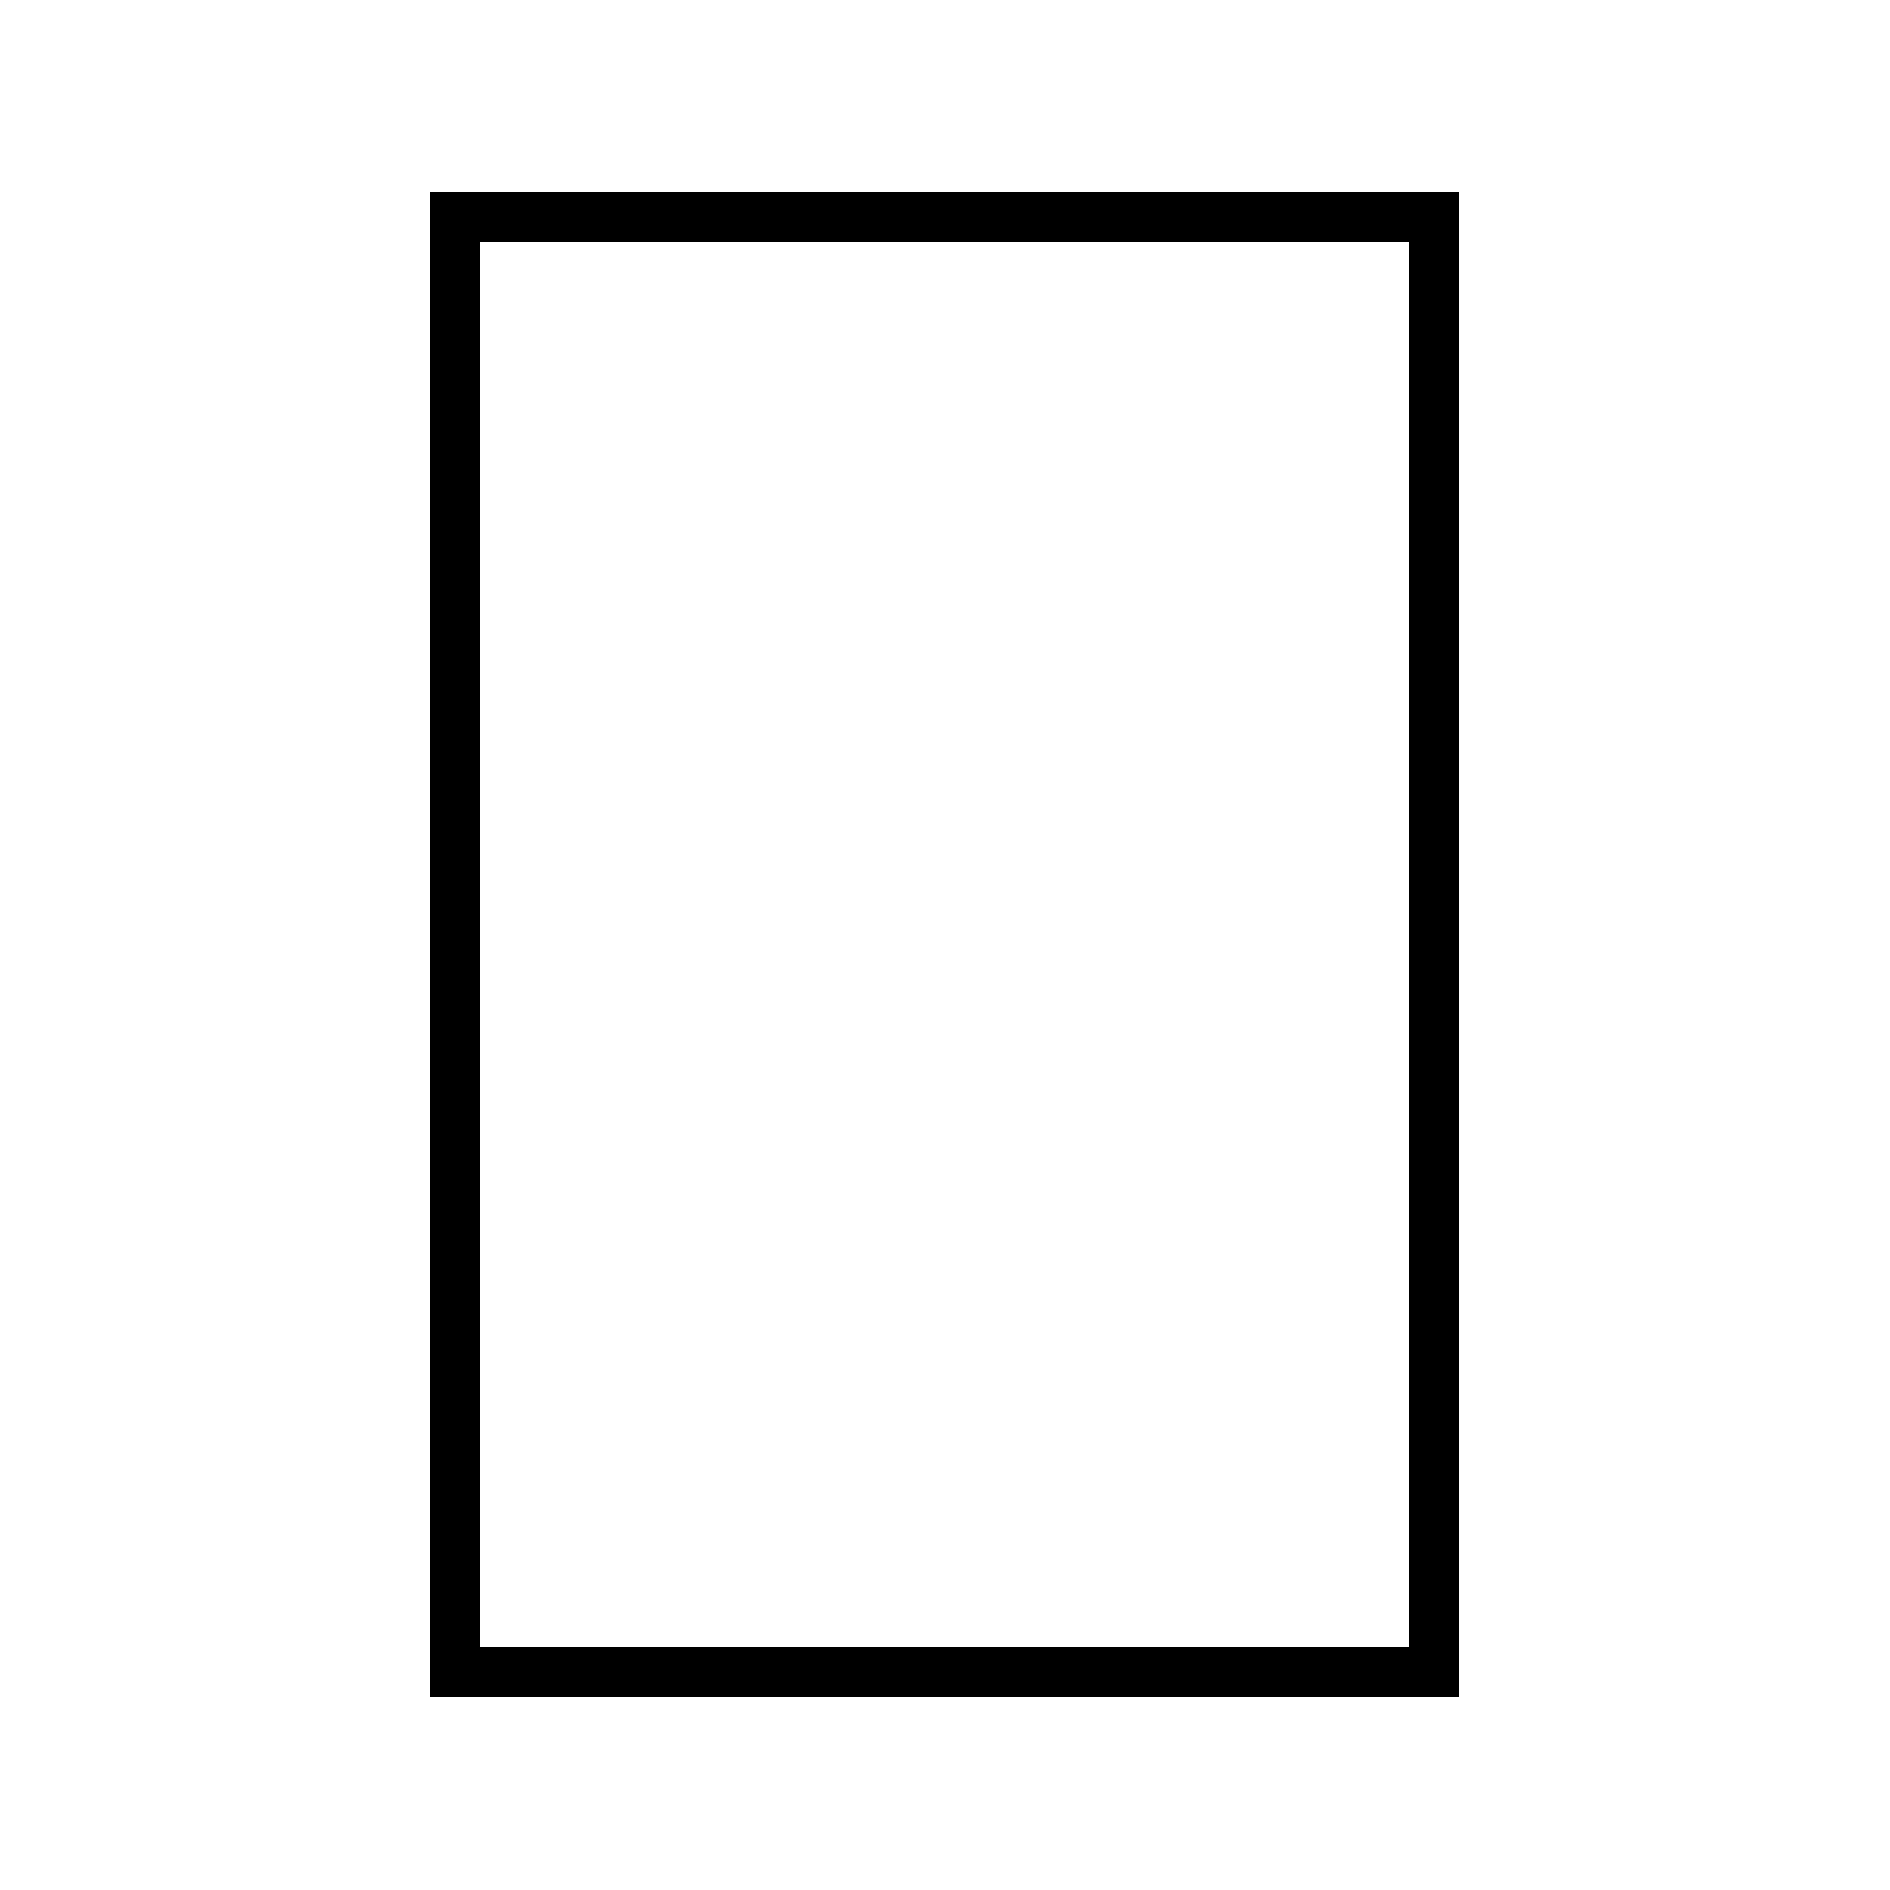 Rectangle Png Black And White - black